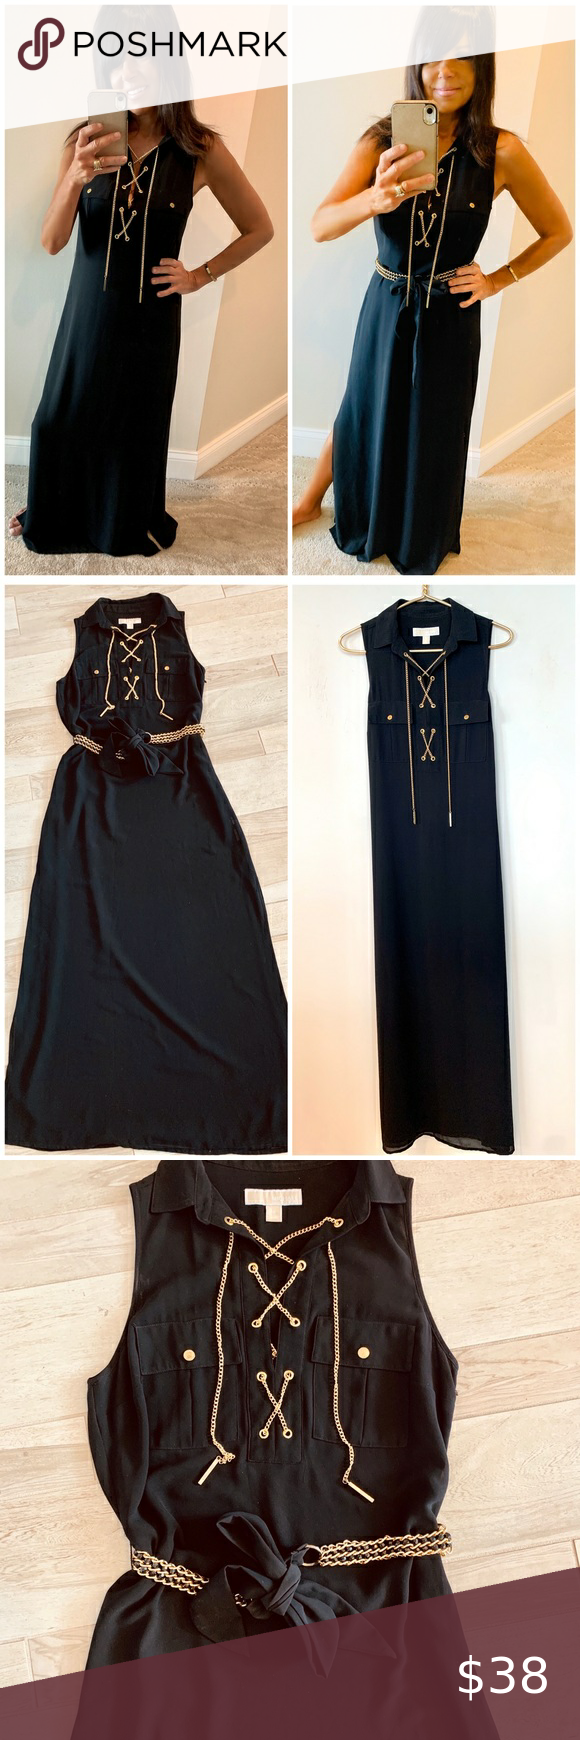 Micheal Kors Black Lace Up Gold Chain Maxi Dress Maxi Dress Black Lace Micheal Kors [ 1740 x 580 Pixel ]